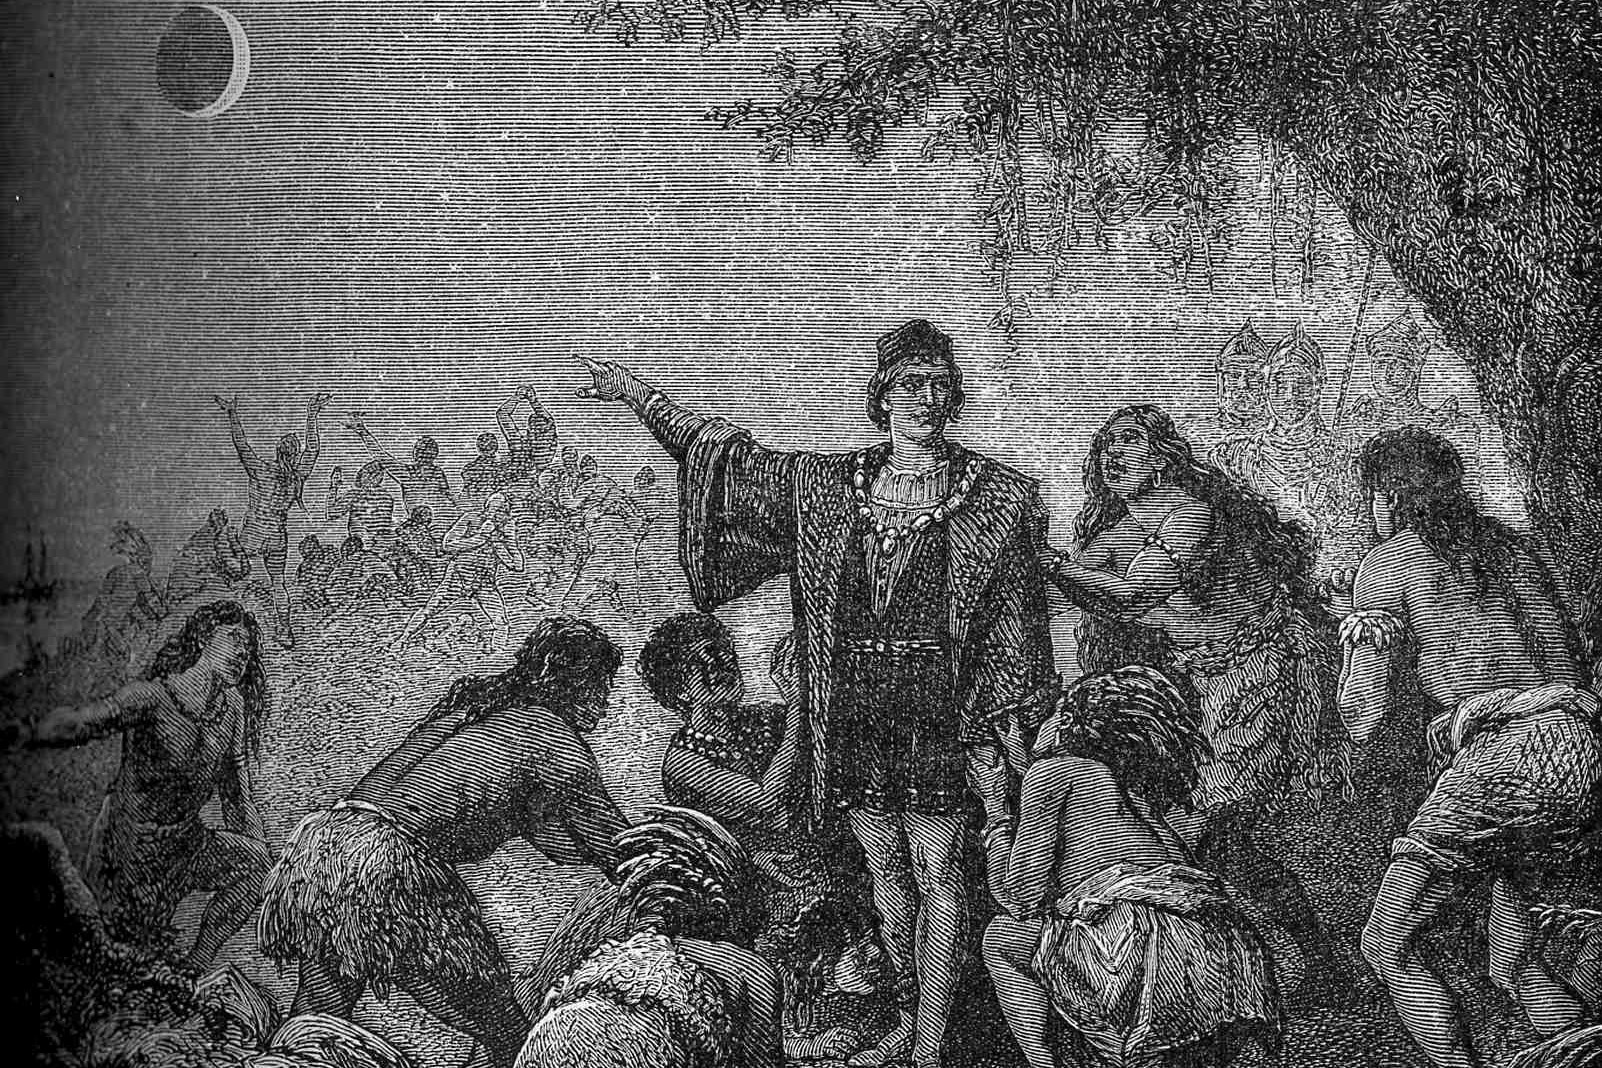 This illustration from 1879 depicts the reaction of a group of indigenous people in South America when the lunar eclipse Christopher Columbus predicted actually happened on Feb. 29, 1504. (Camille Flammarion (Astronomie Populaire 1879) via Wikimedia Commons)